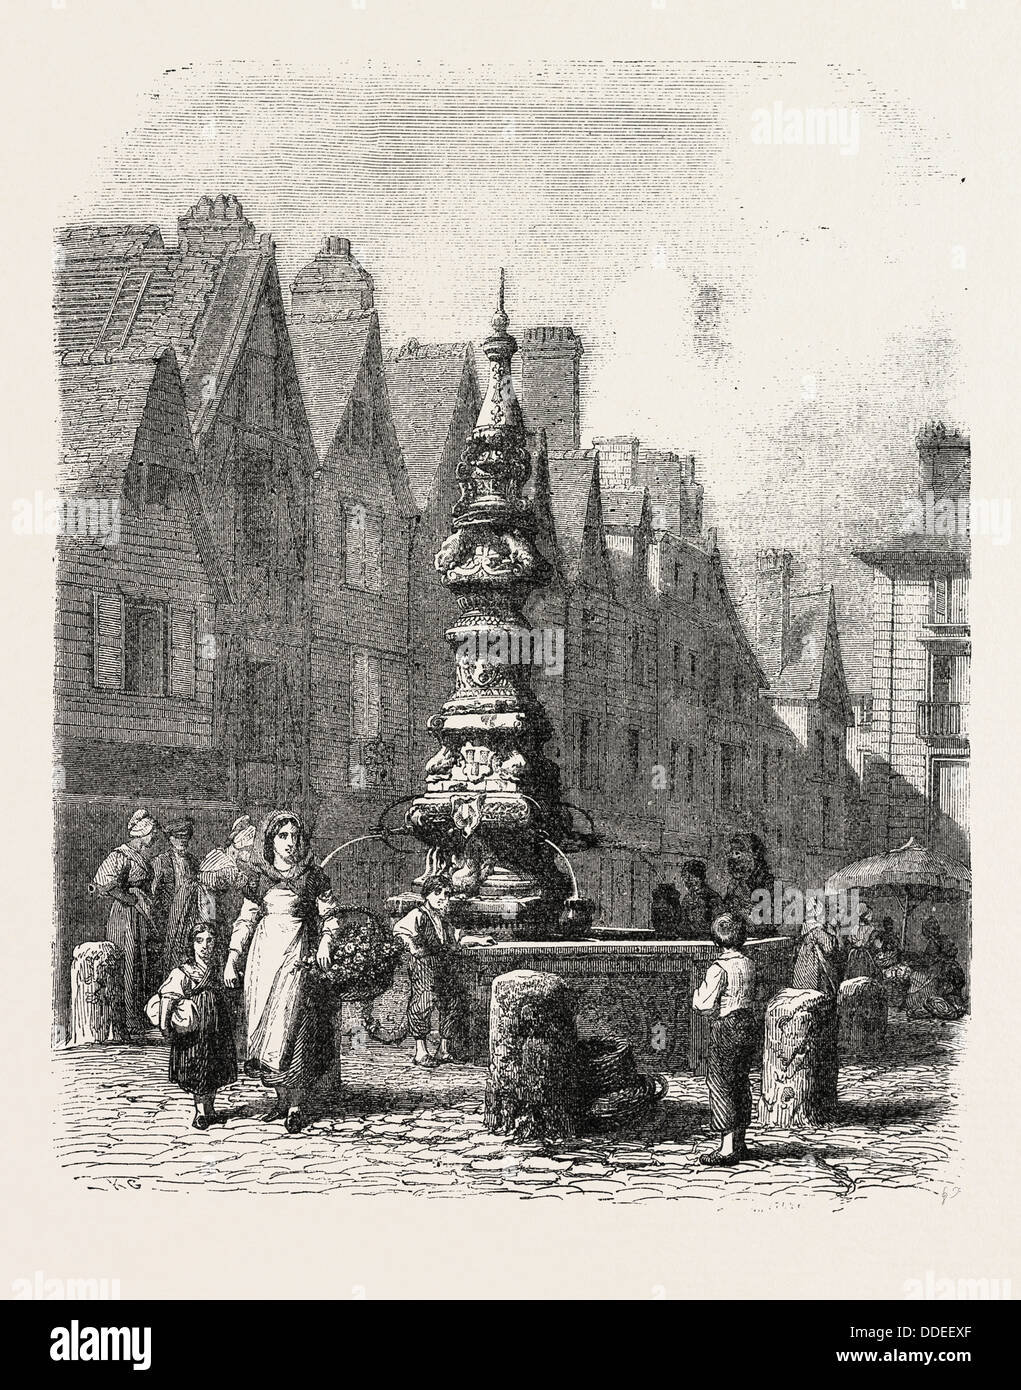 Fountain on the  grand marché in Tours, France. engraving 1855 - Stock Image